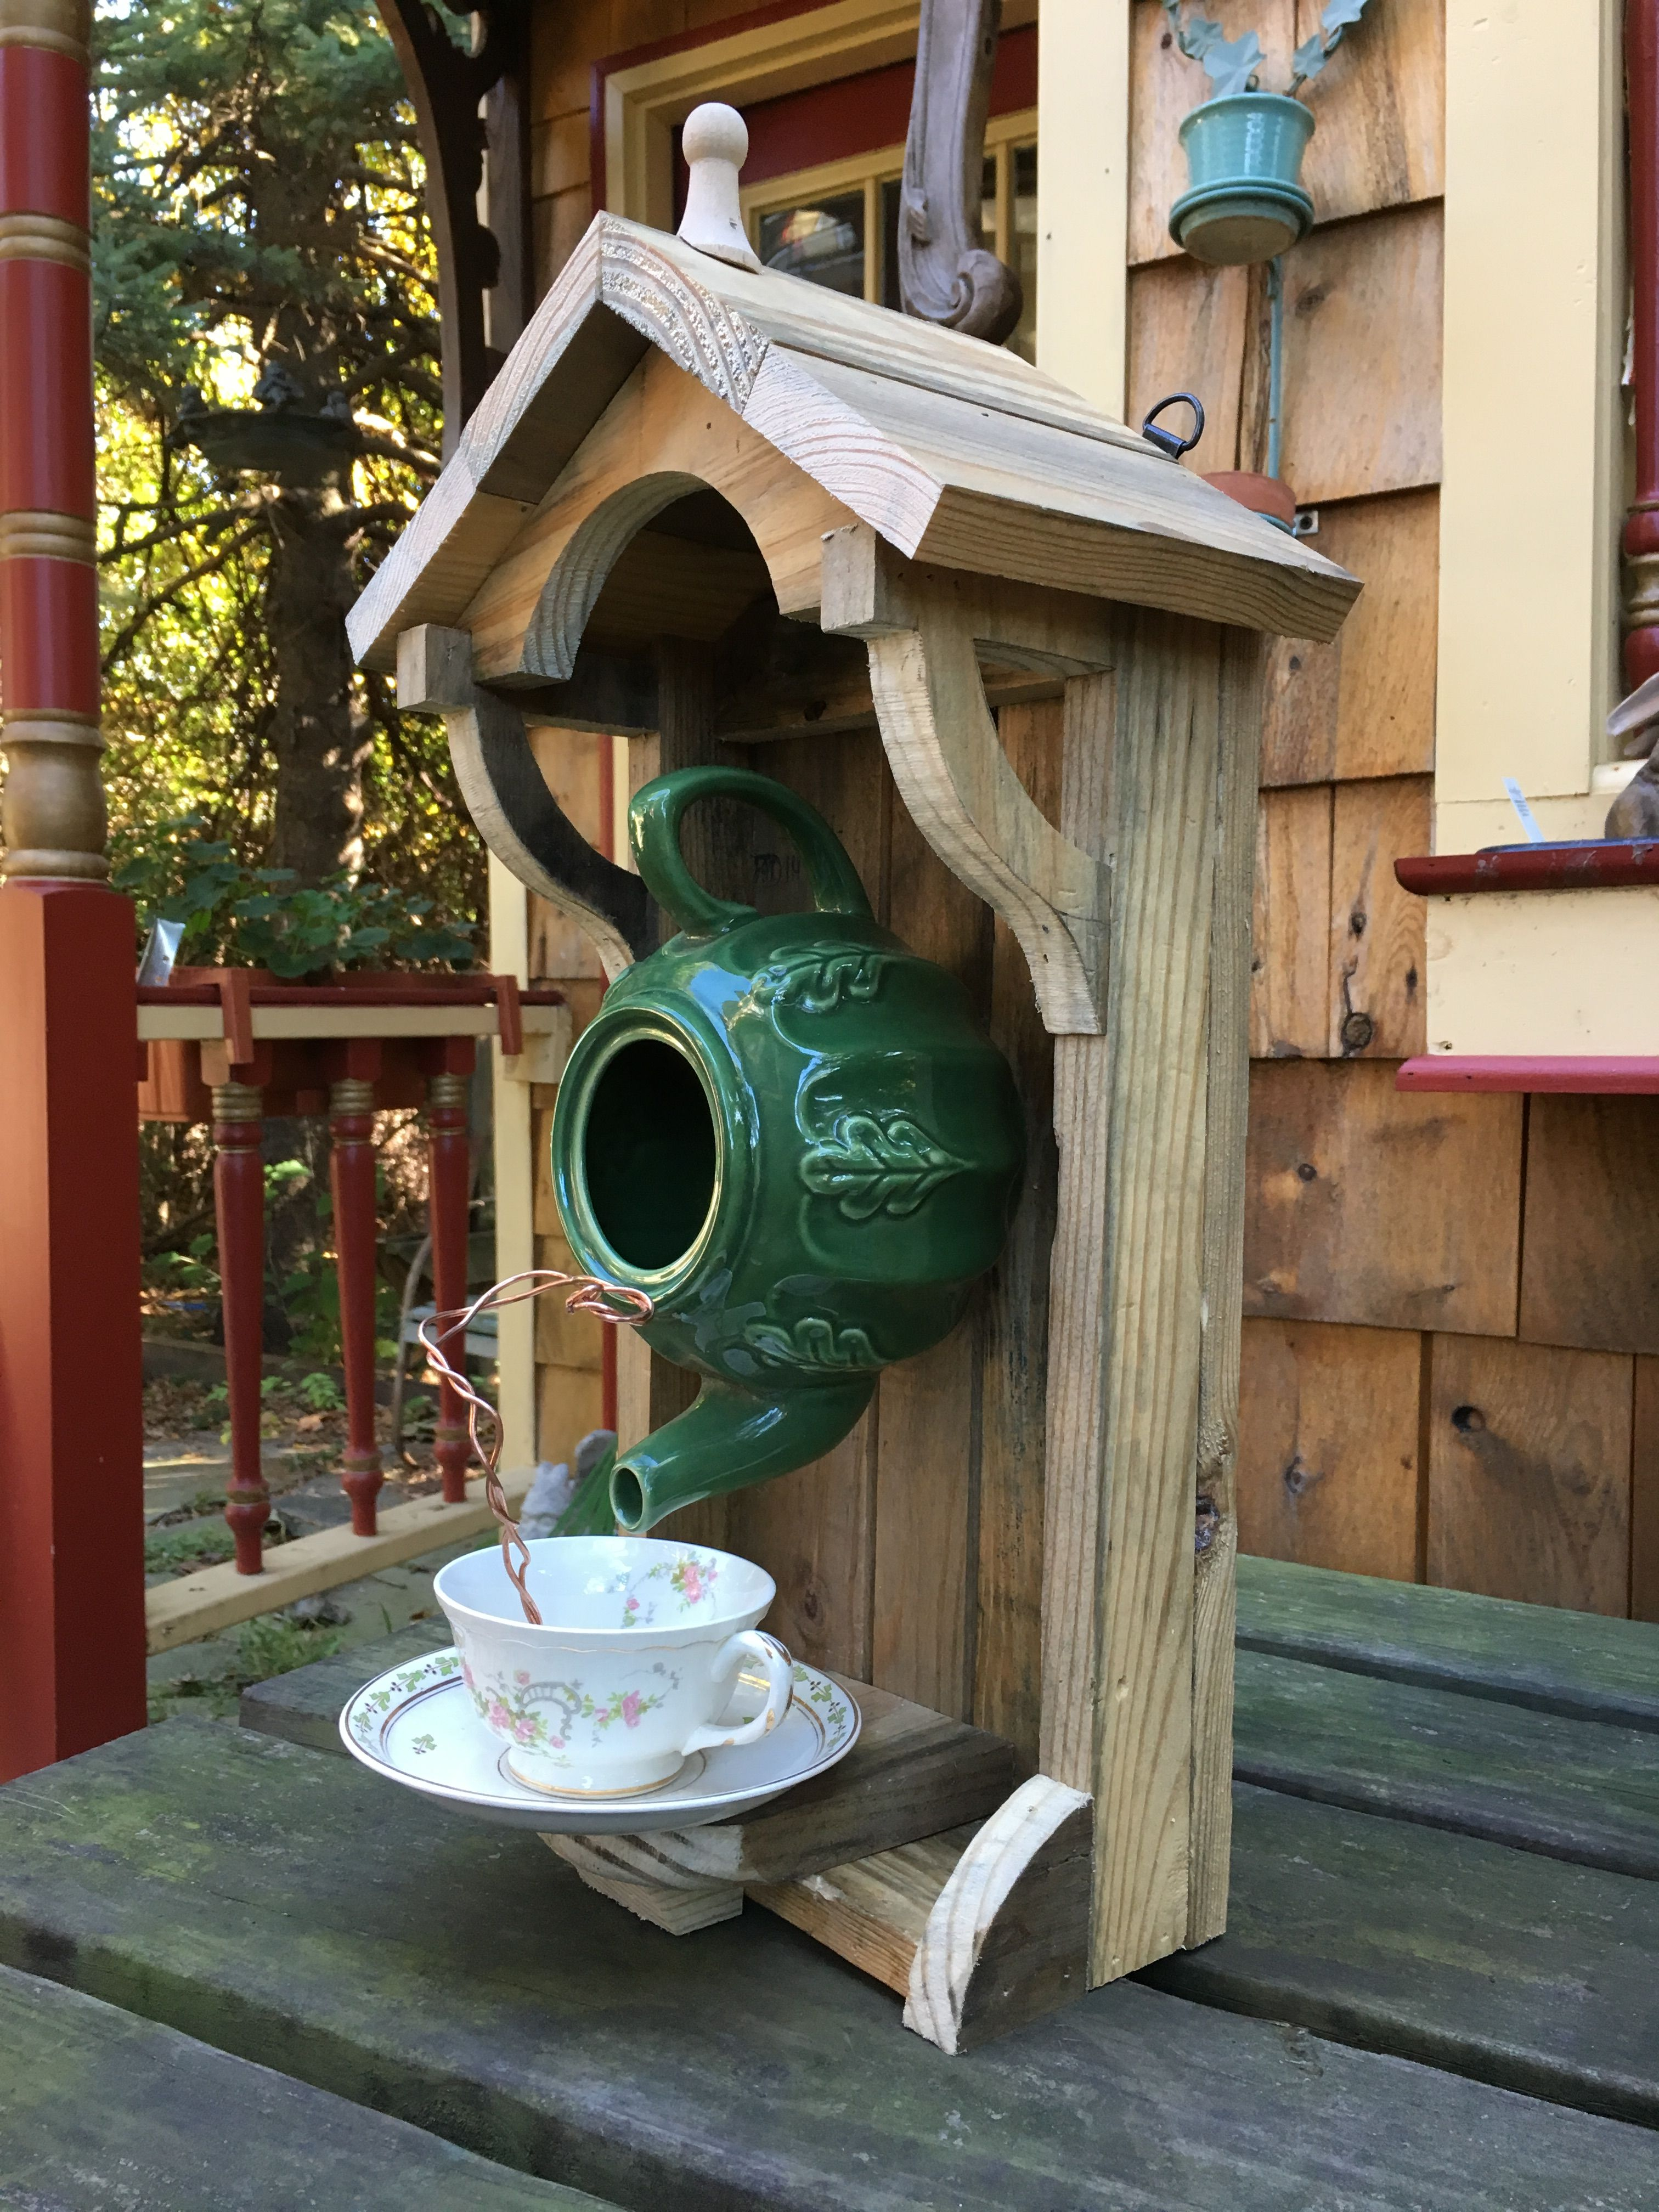 Teapot birdhouse from an old palette and a teapot. | Crafts ... on coffee bird houses, flower bird houses, basket bird houses, tree bird houses, christmas bird houses, box bird houses, easy to make bird houses, silver bird houses, pan bird houses, book bird houses, clock bird houses, really easy bird houses, spoon bird houses, vintage bird houses, porcelain bird houses, cream bird houses, teacup bird houses, watering can bird houses, tea cup bird feeder poem, kettle bird houses,